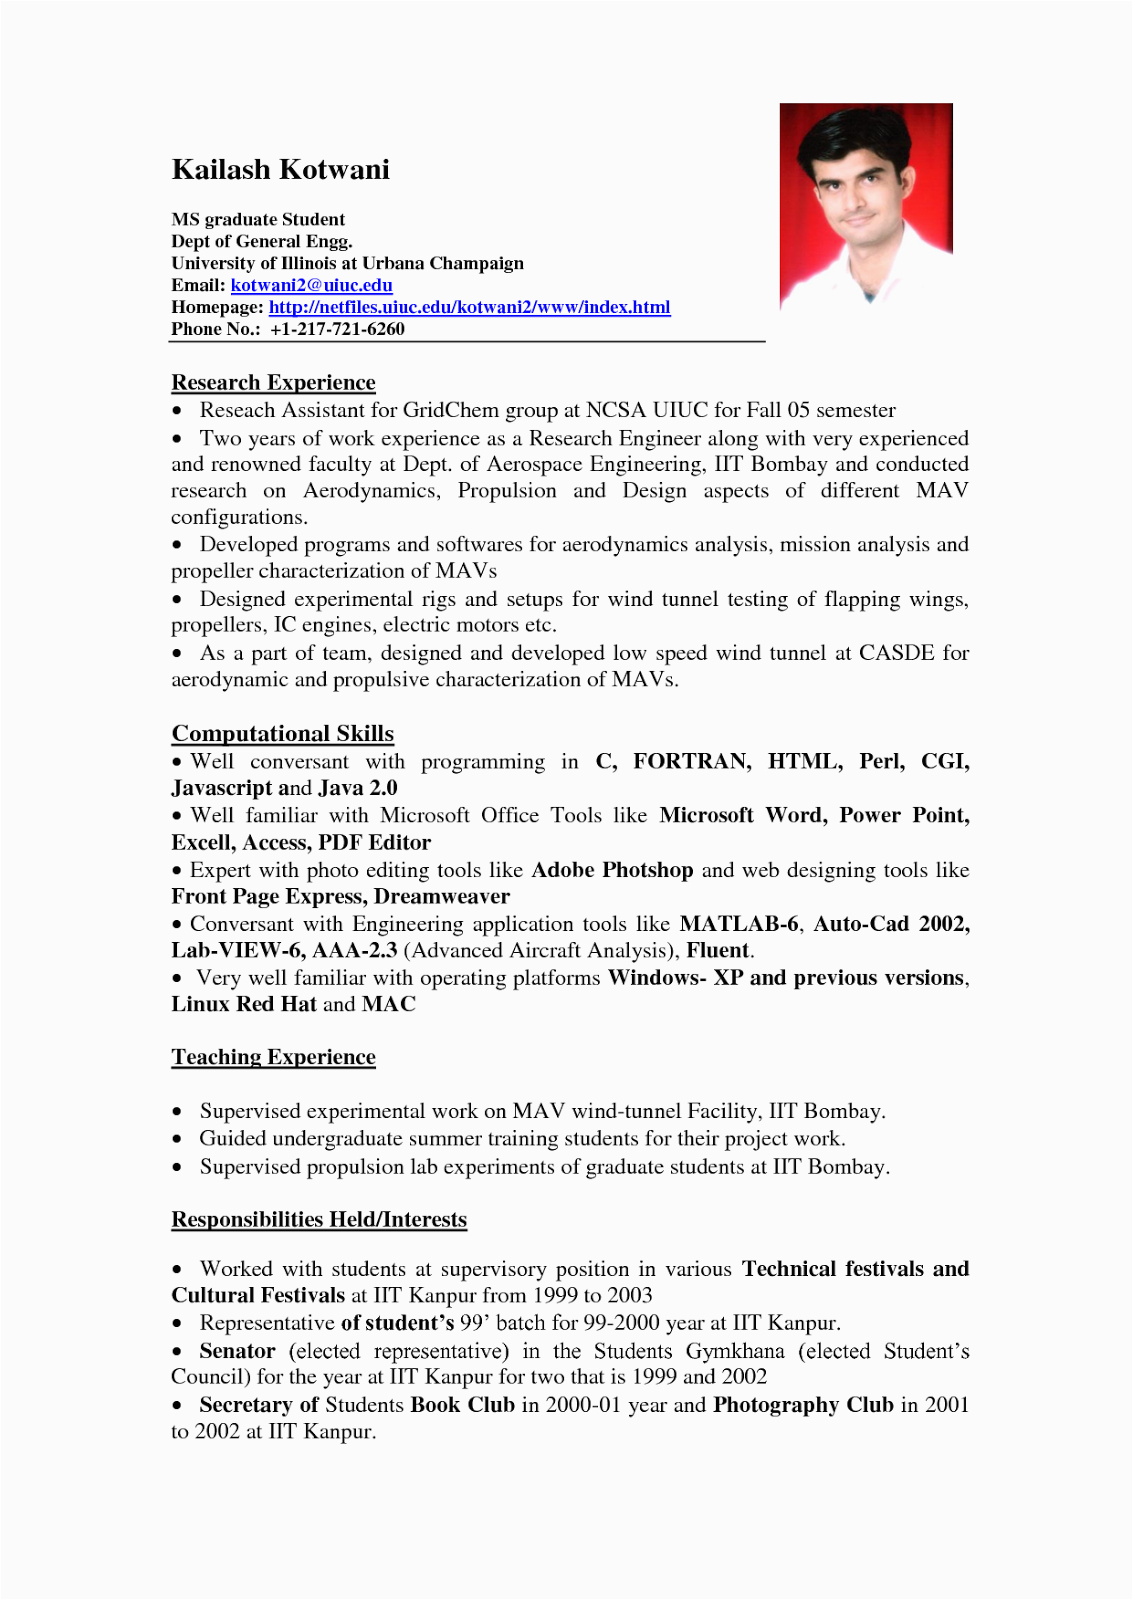 resume sample for students with no